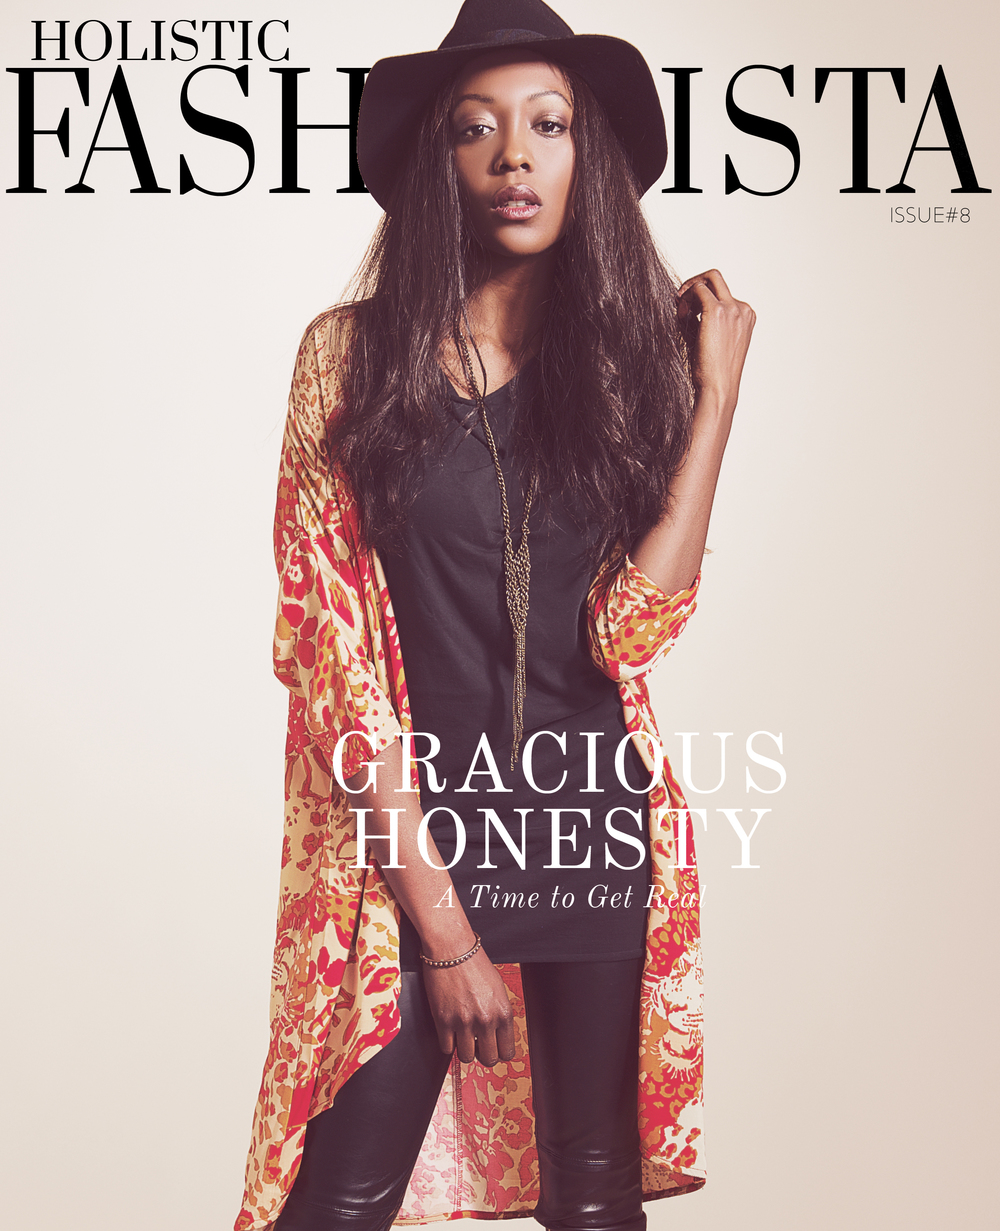 Holistic Fashionista Magazine: Issue #7